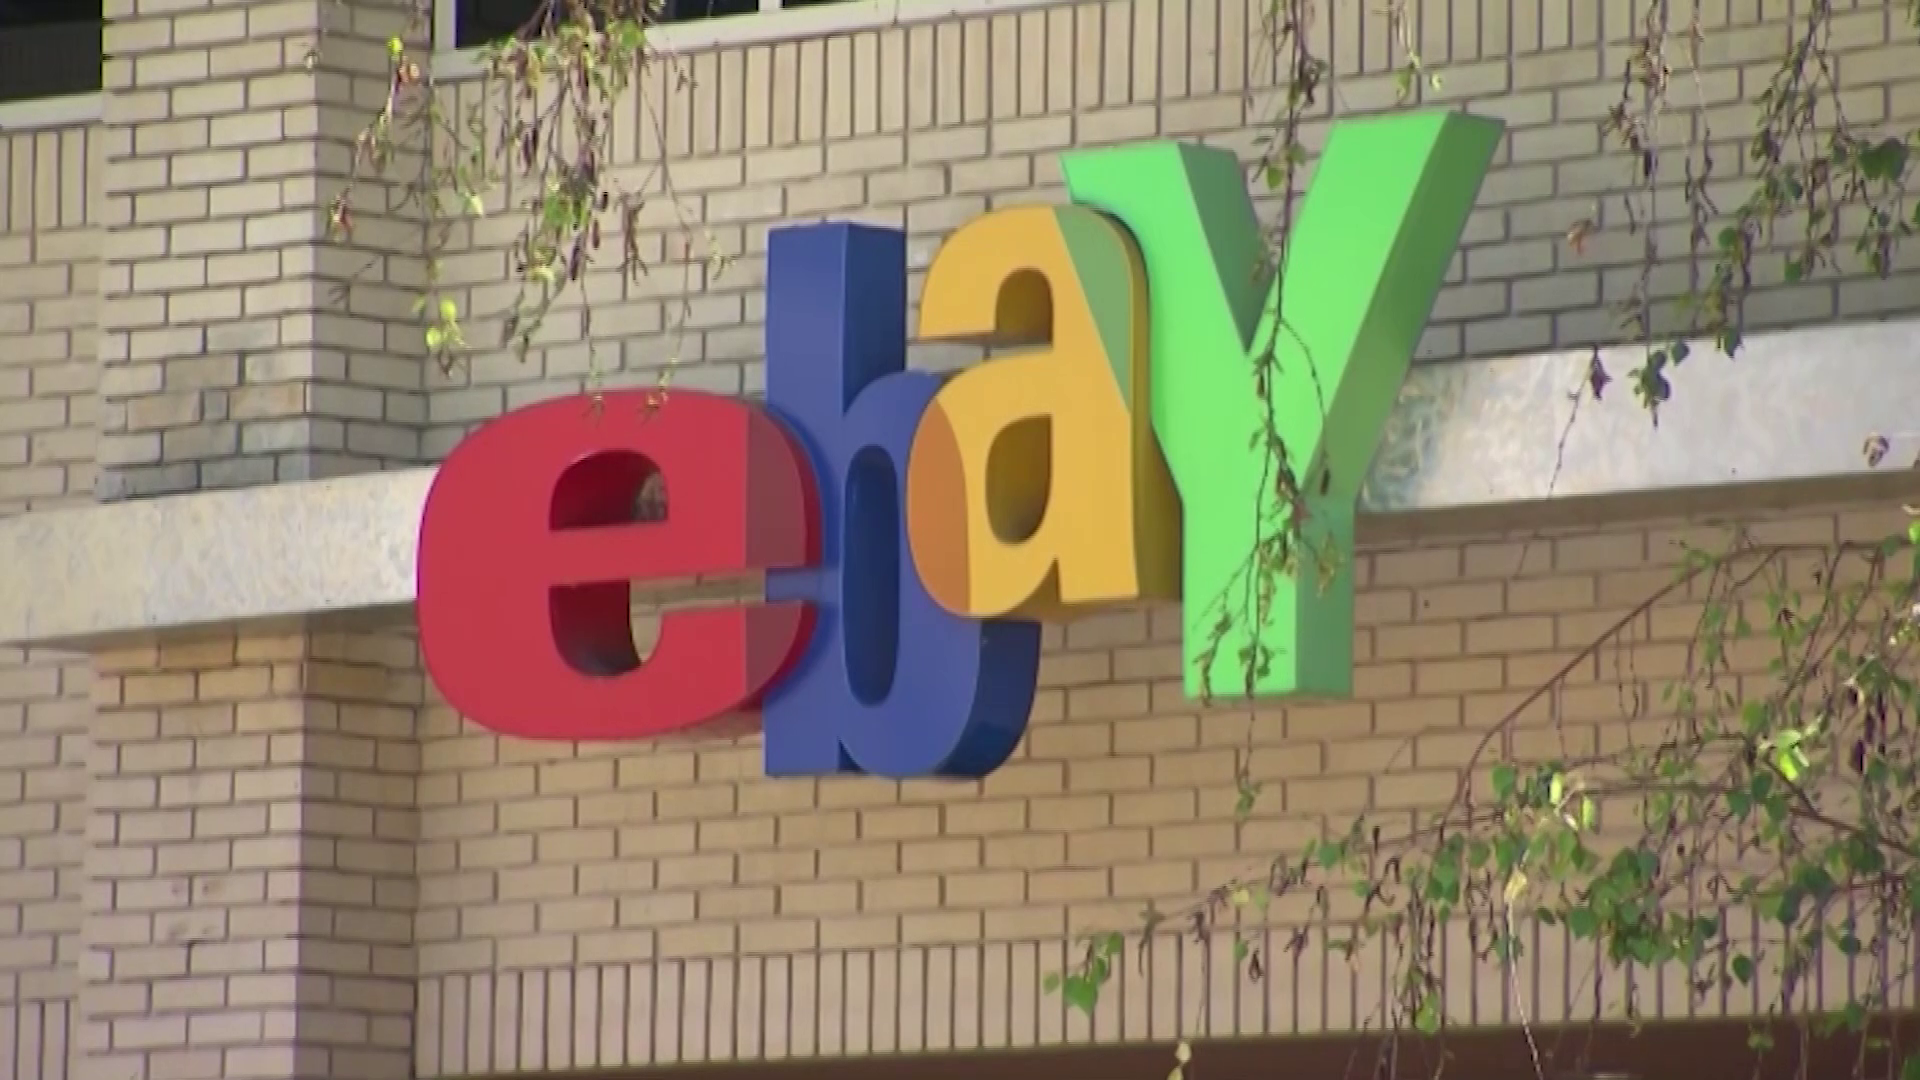 Former Ebay Employees Sent Bugs Bloody Mask To Couple In Aggressive Cyberstalking Campaign Feds Say